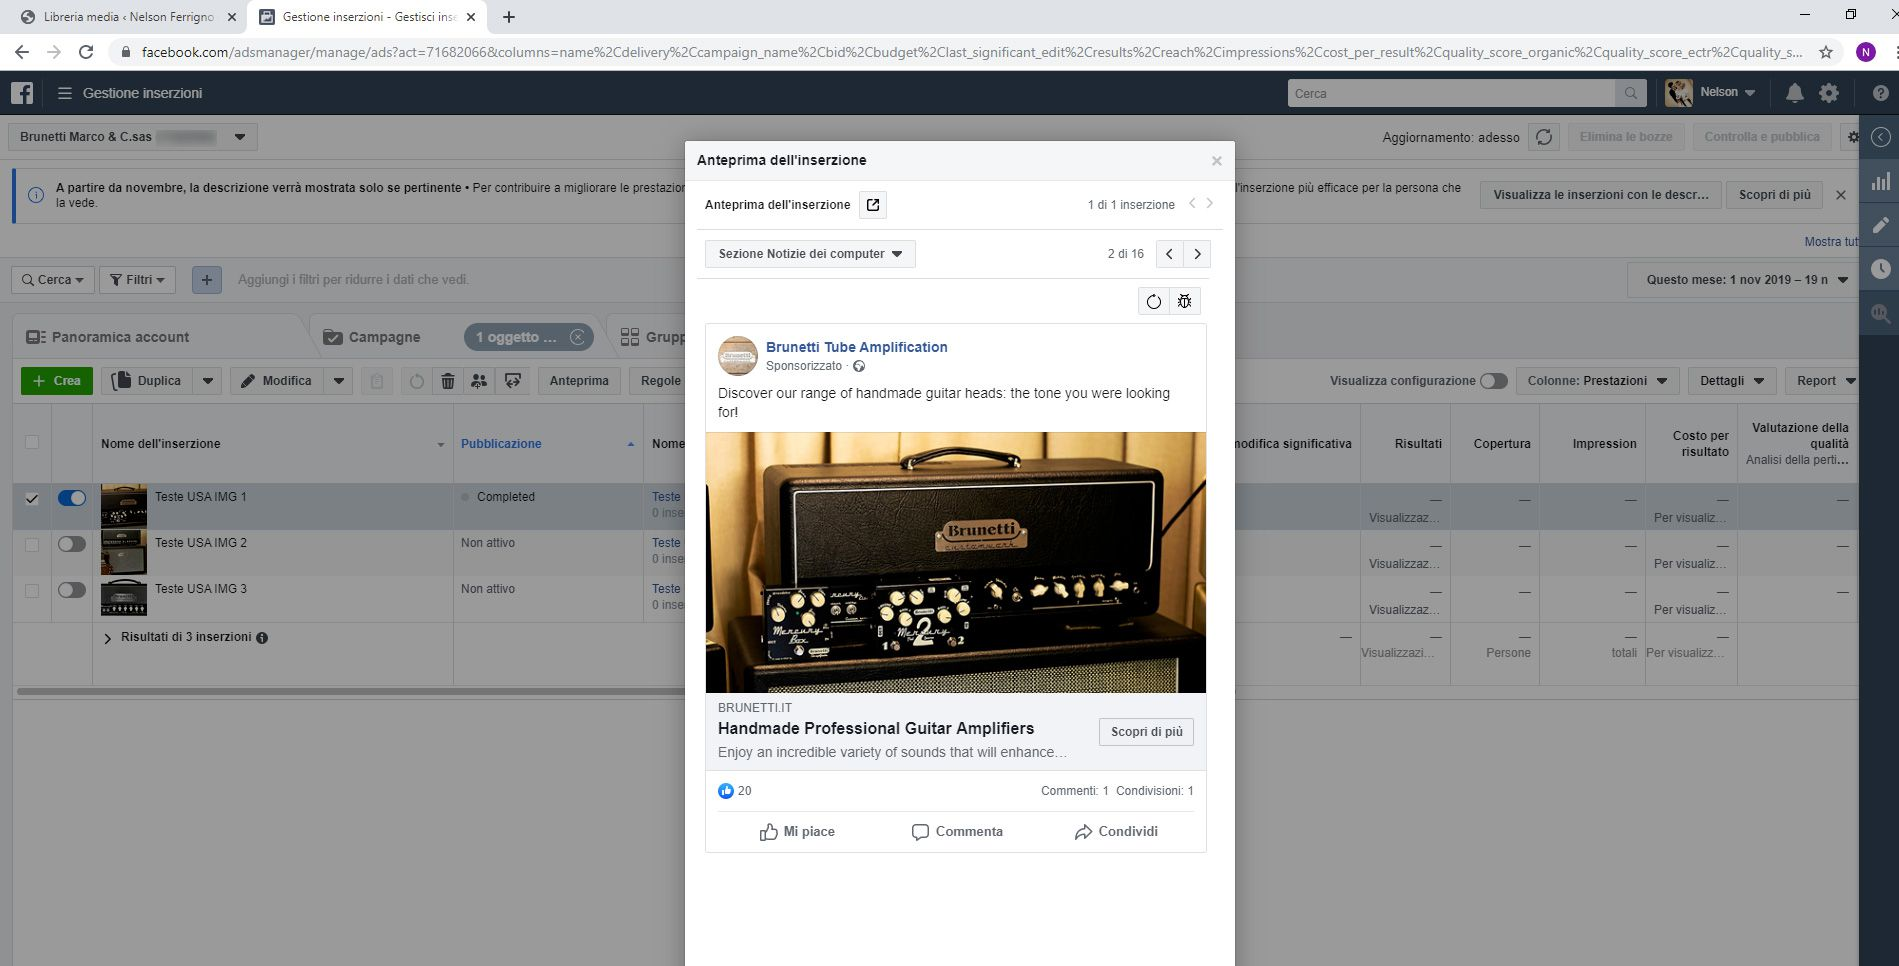 Un esempio di campagna Facebook Ads per Brunetti Tube Amplification.